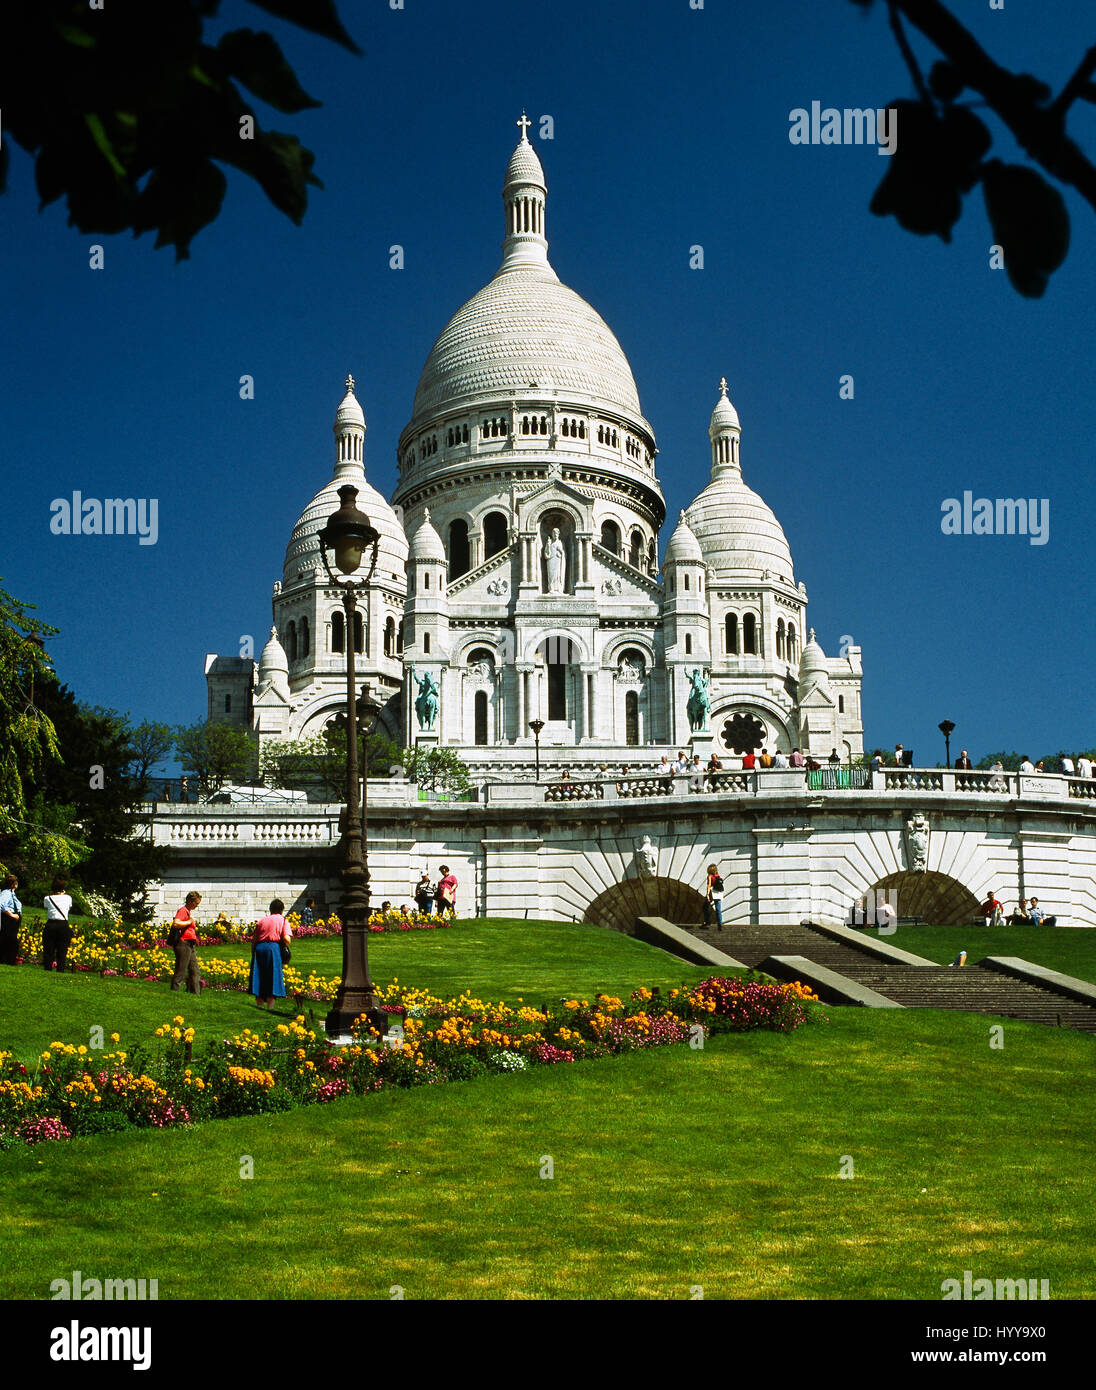 The Basilique du Sacré-Cœur ('Basilica of the Sacred Heart'). Montmartre, Paris, France 2013. - Stock Image